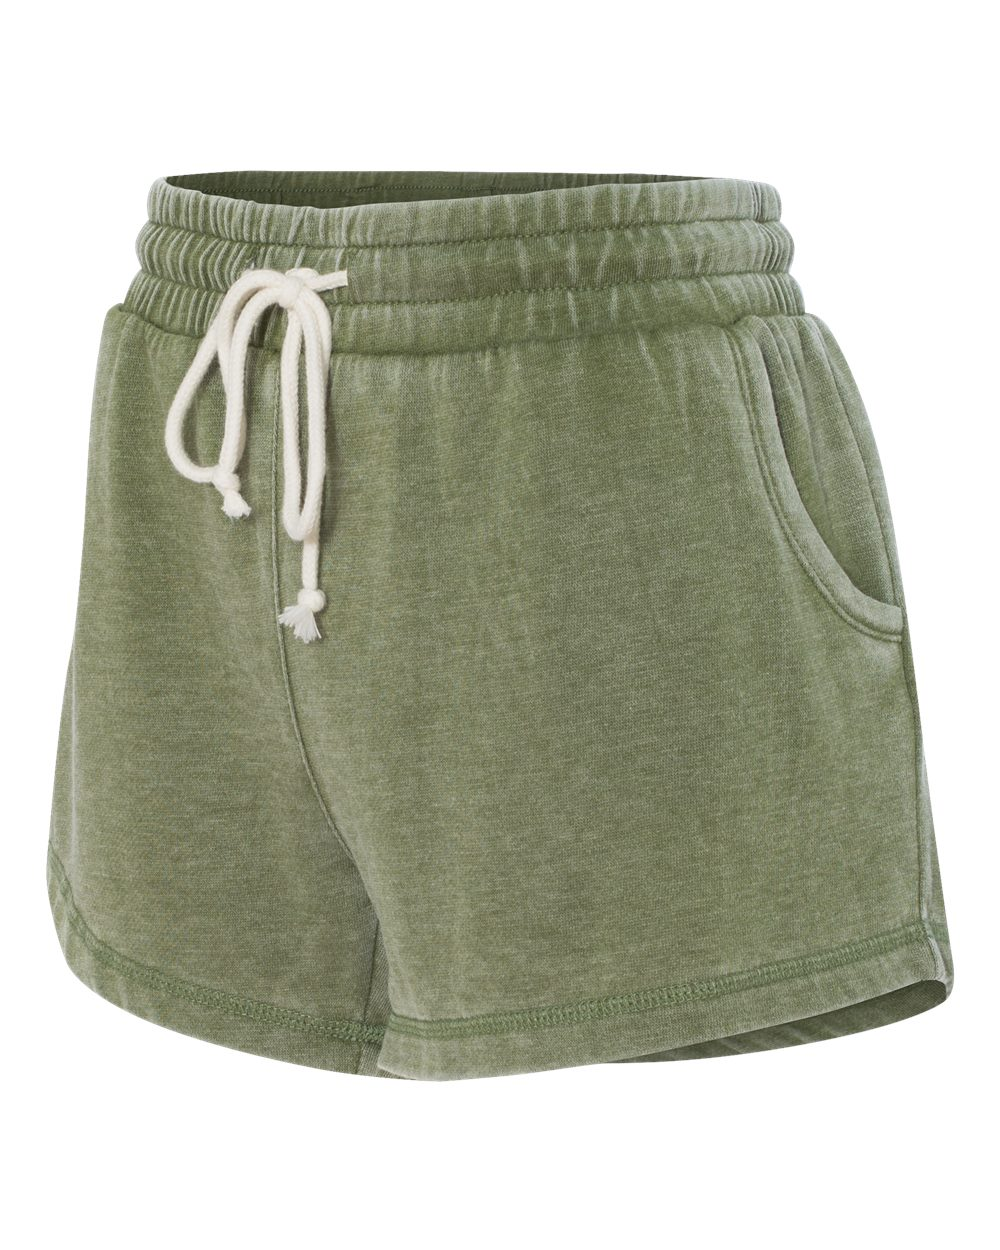 Boxercraft K11 - Women's Enzyme-Washed Rally Shorts